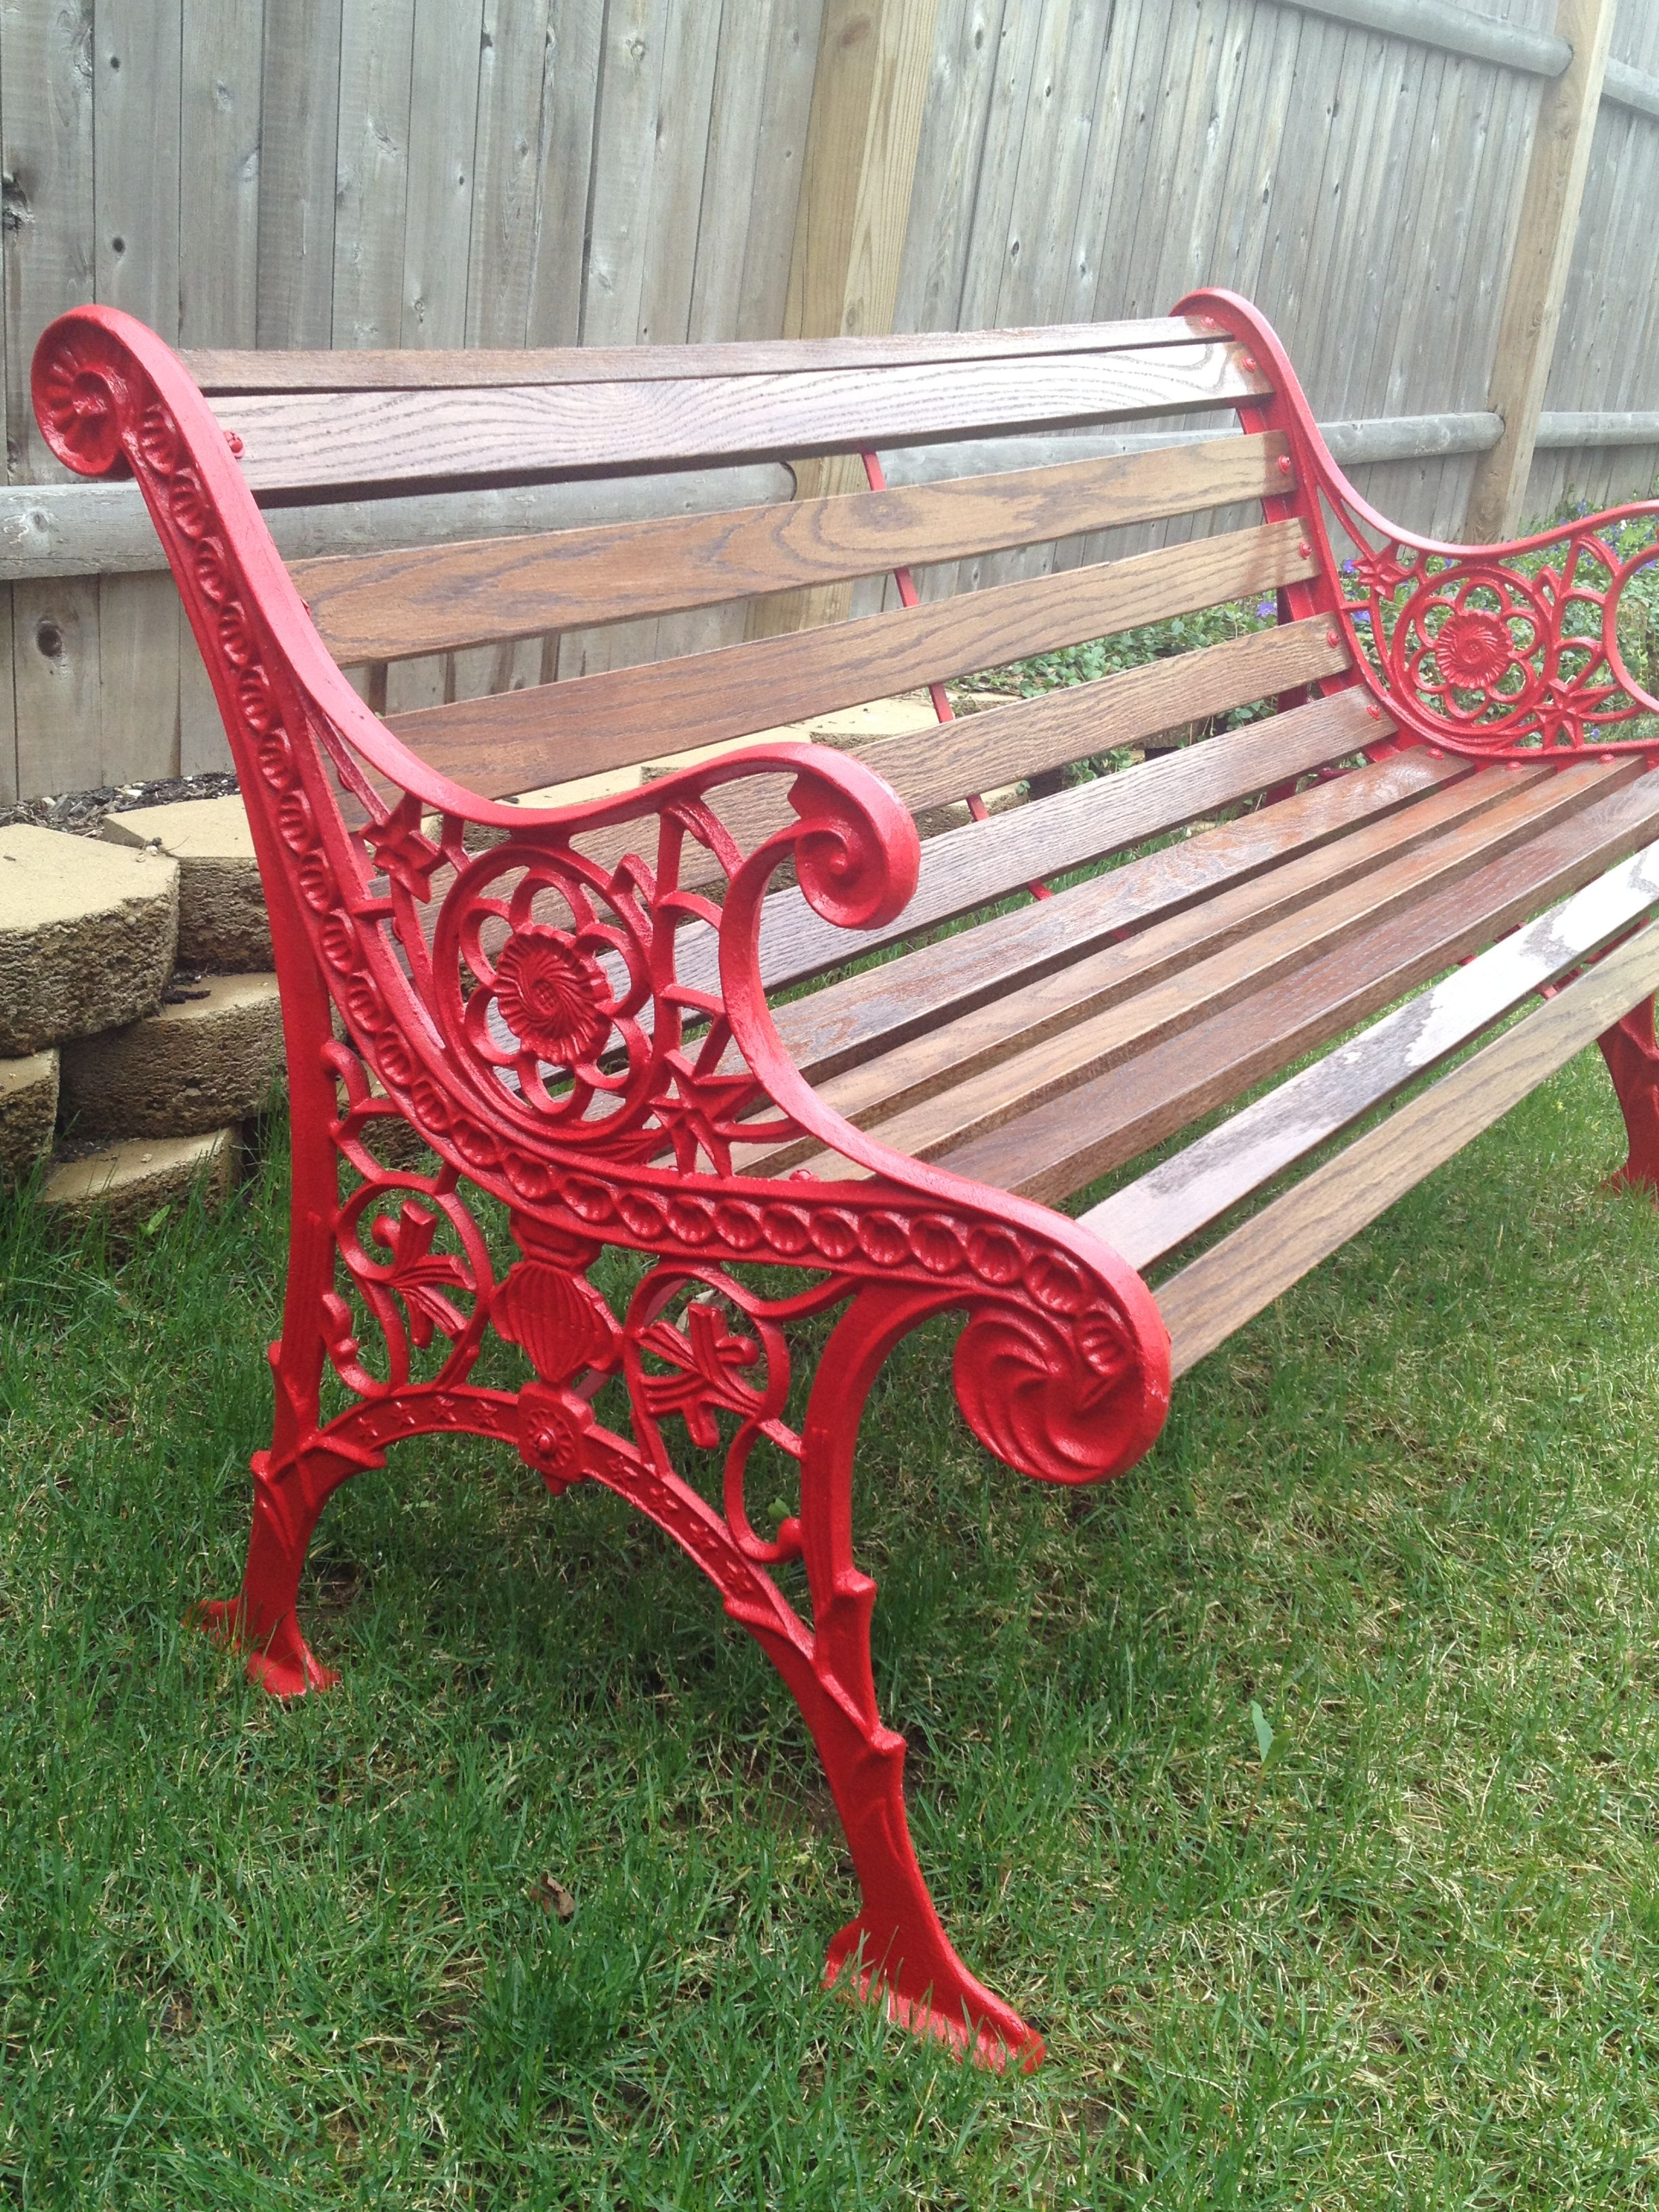 Vintage Cast Iron Bench Restored Cast Iron Garden Furniture